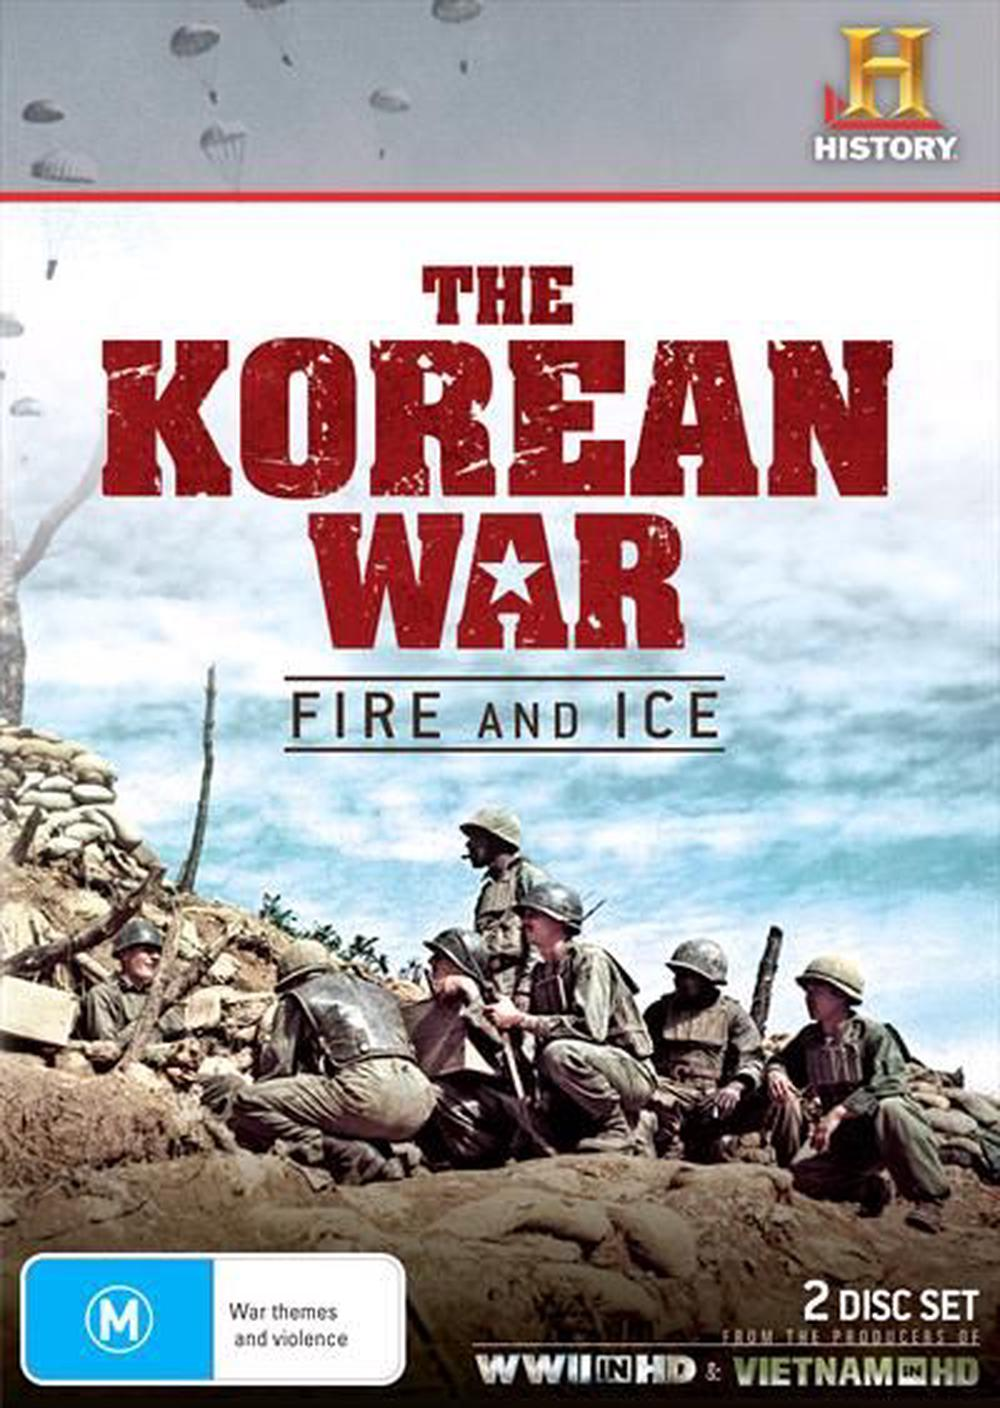 Korean War, The - Fire And Ice, DVD | Buy online at The Nile